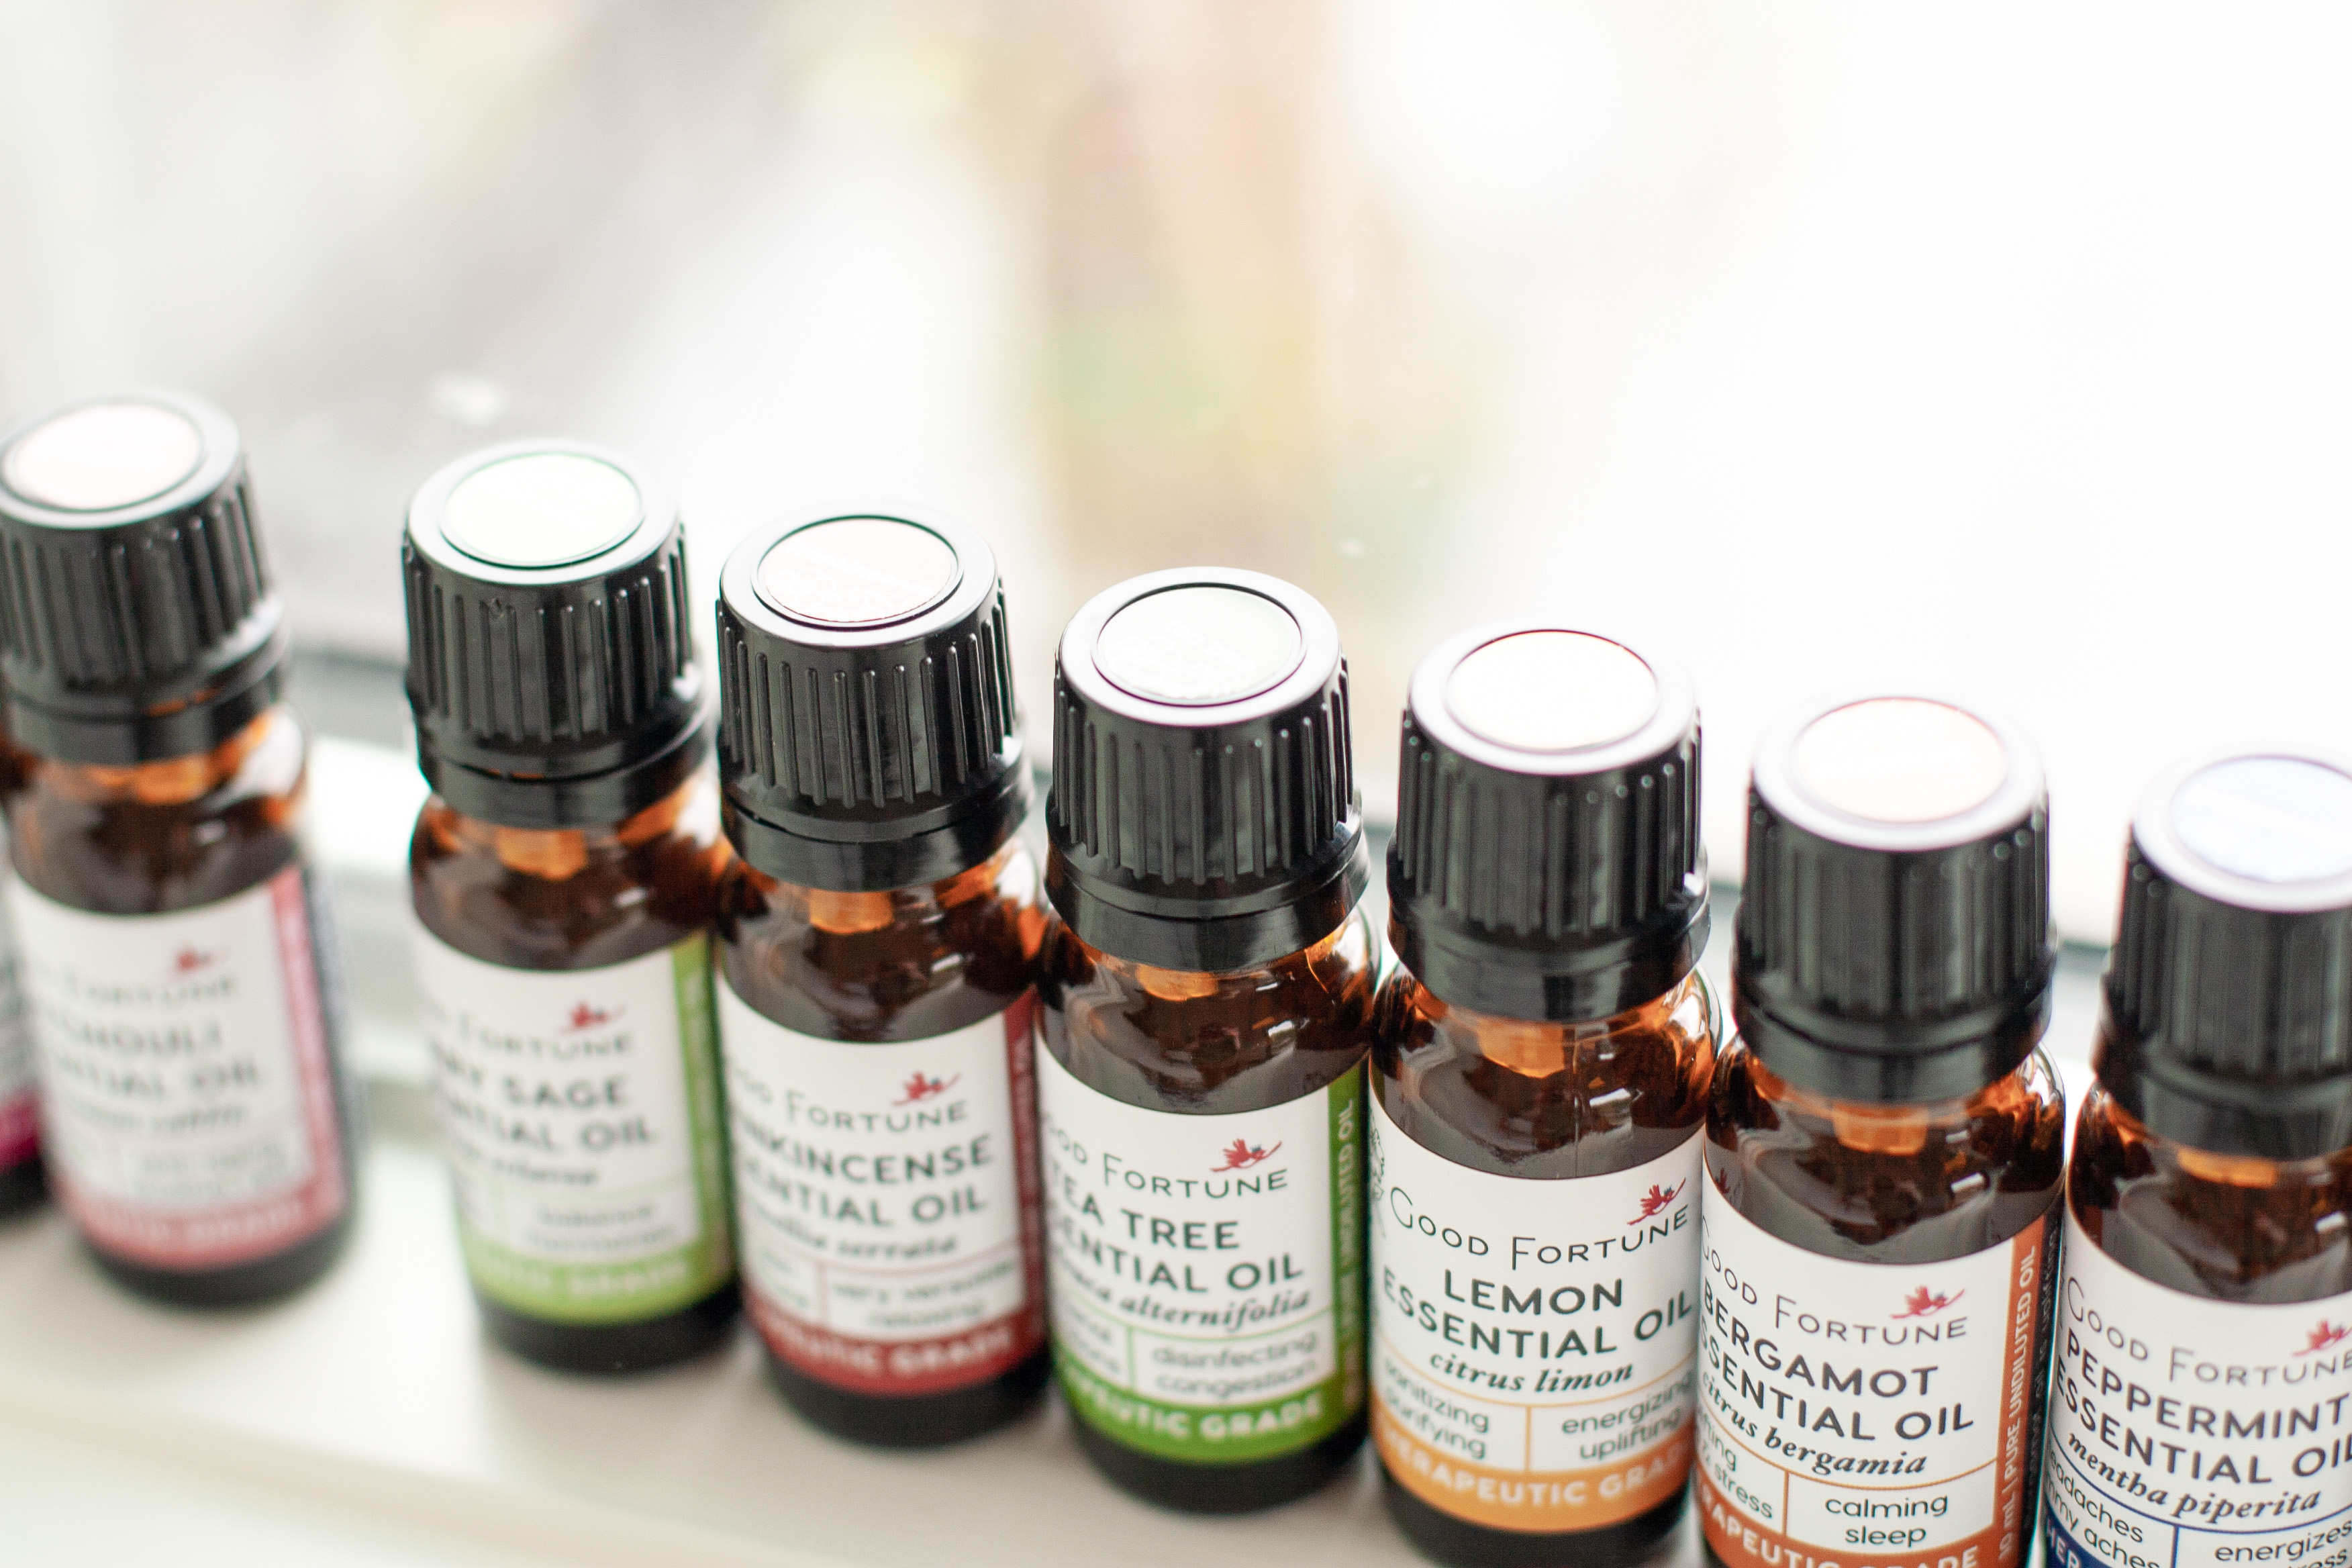 Pure essential oils from Good Fortune Soap